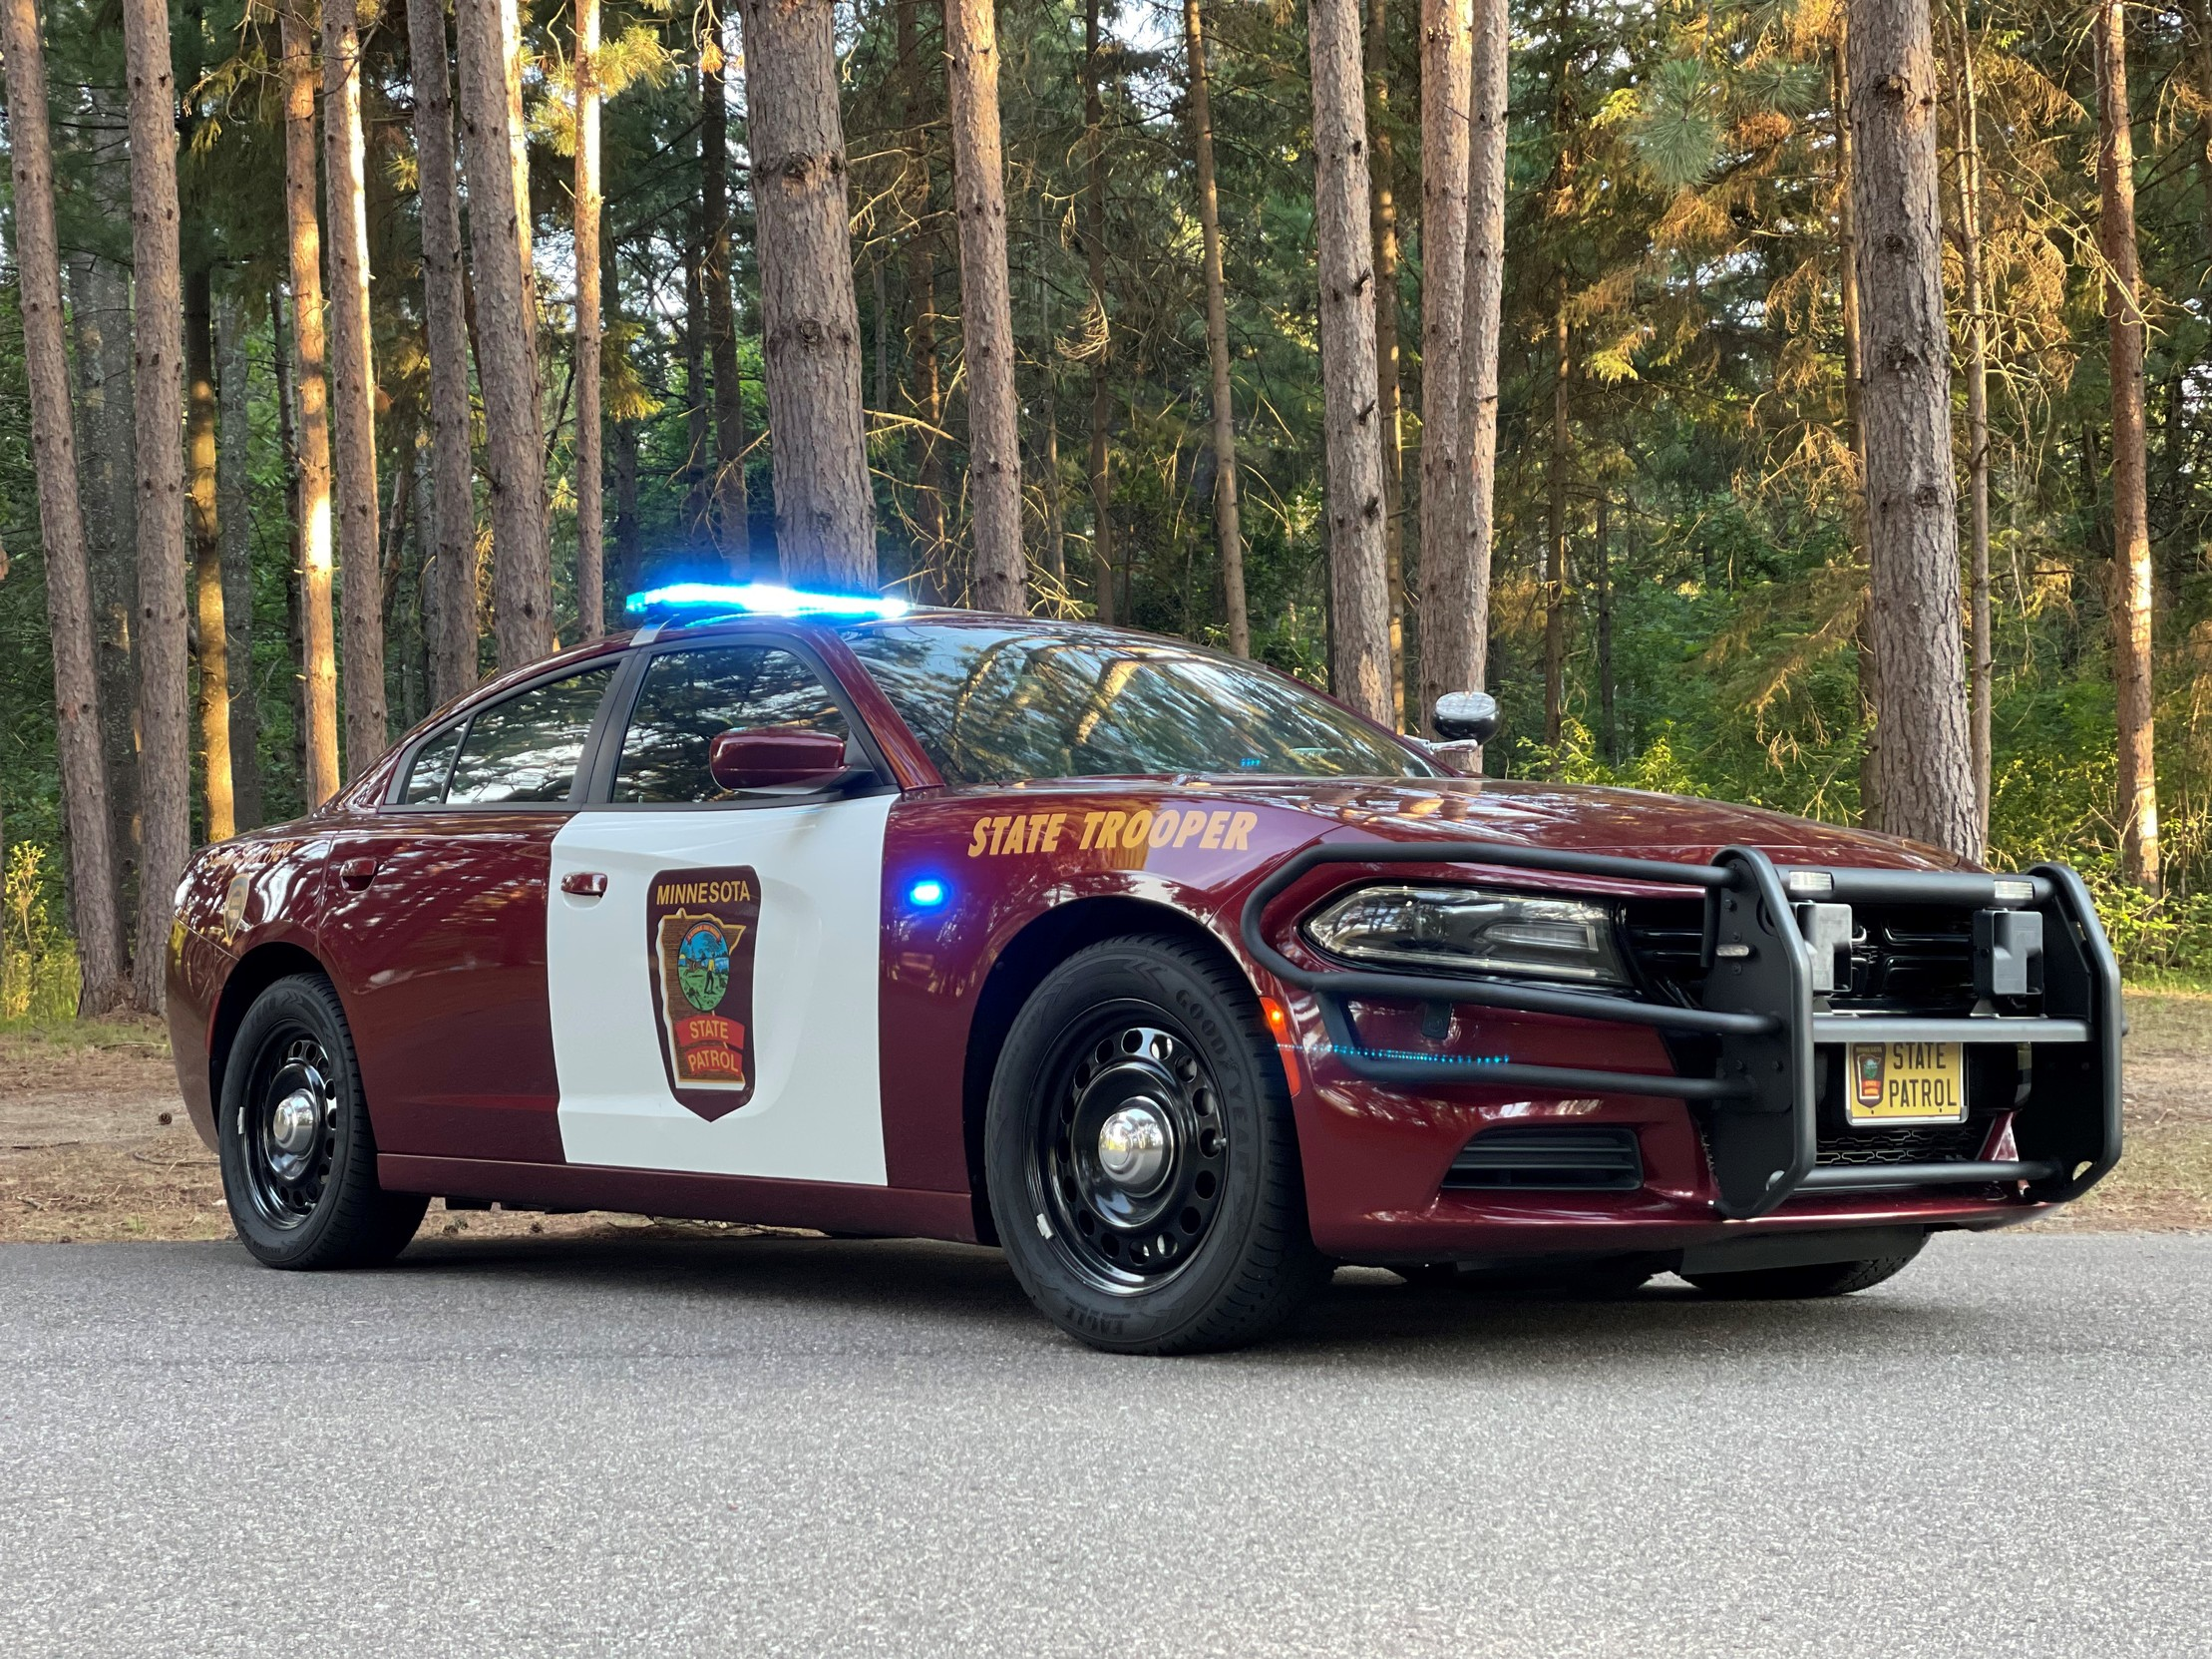 <strong>Minnesota State Patrol</strong>